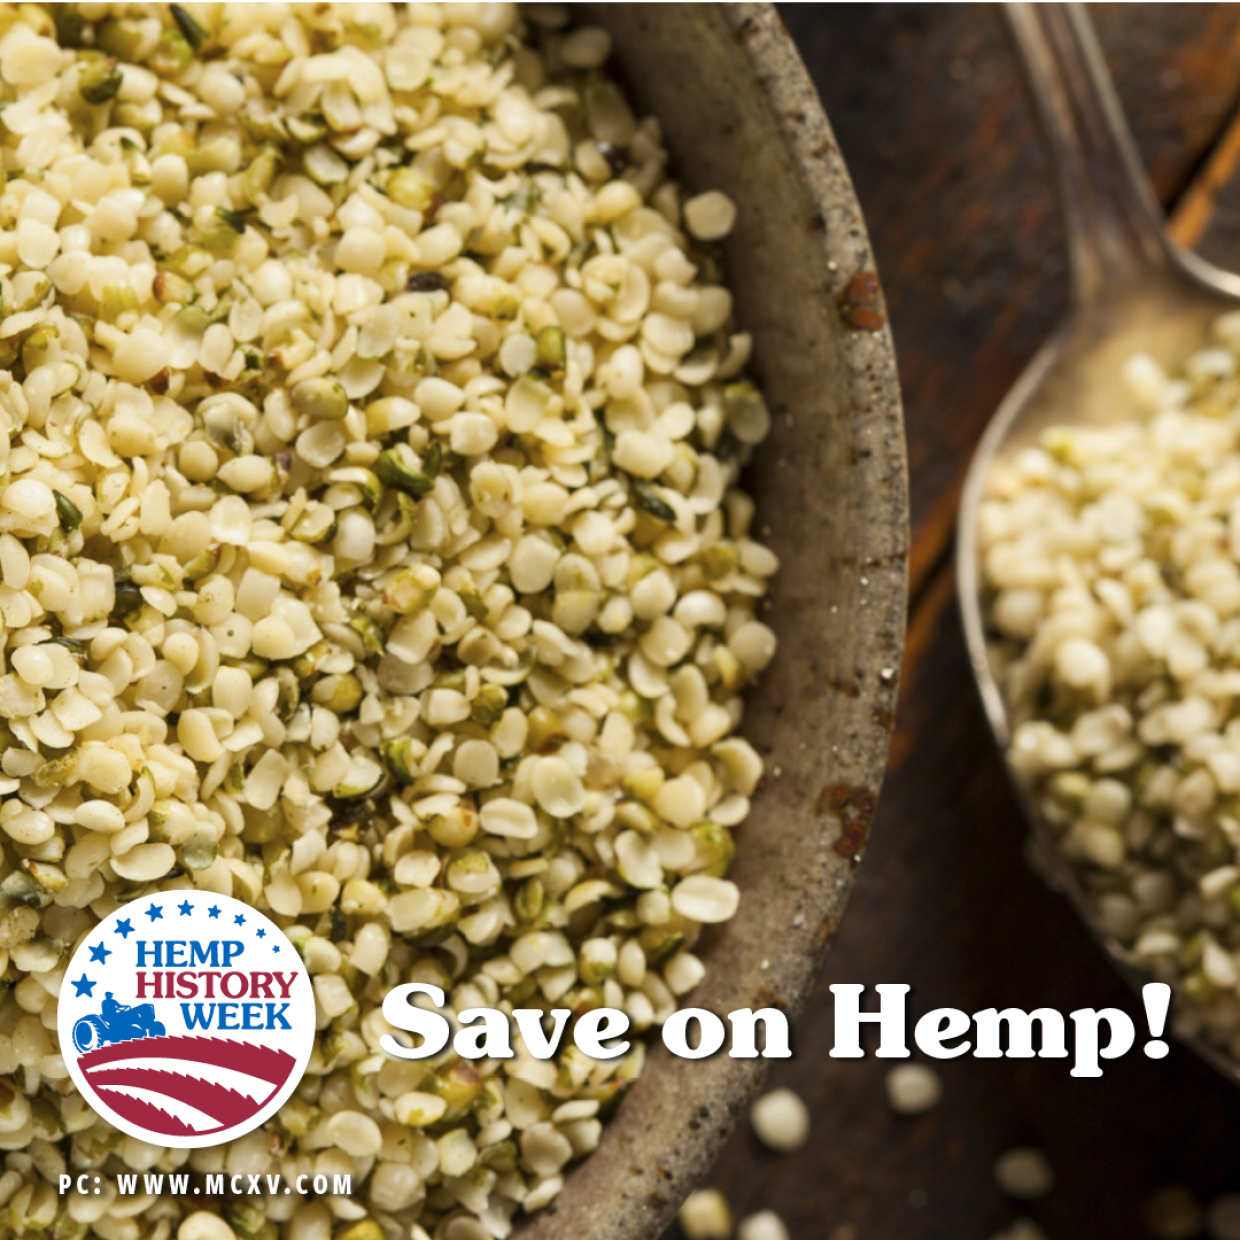 Try Hemp for Your Health